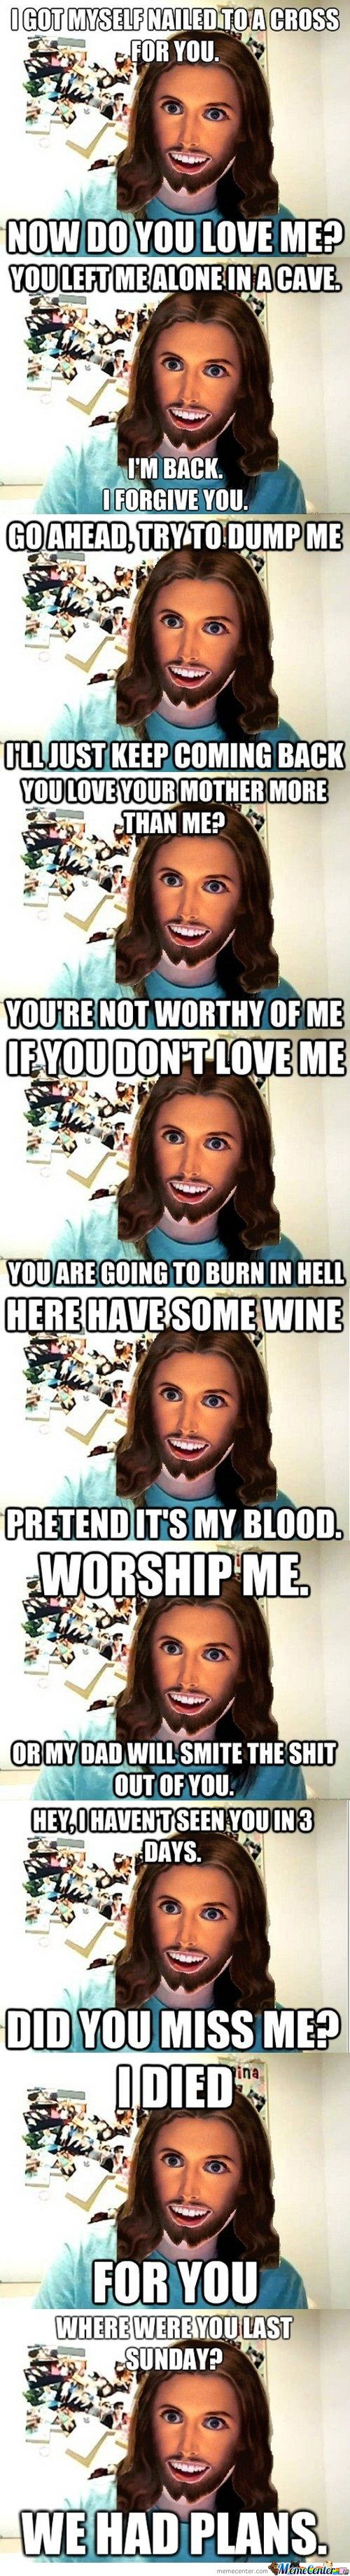 Overly Attached Jesus Compilation